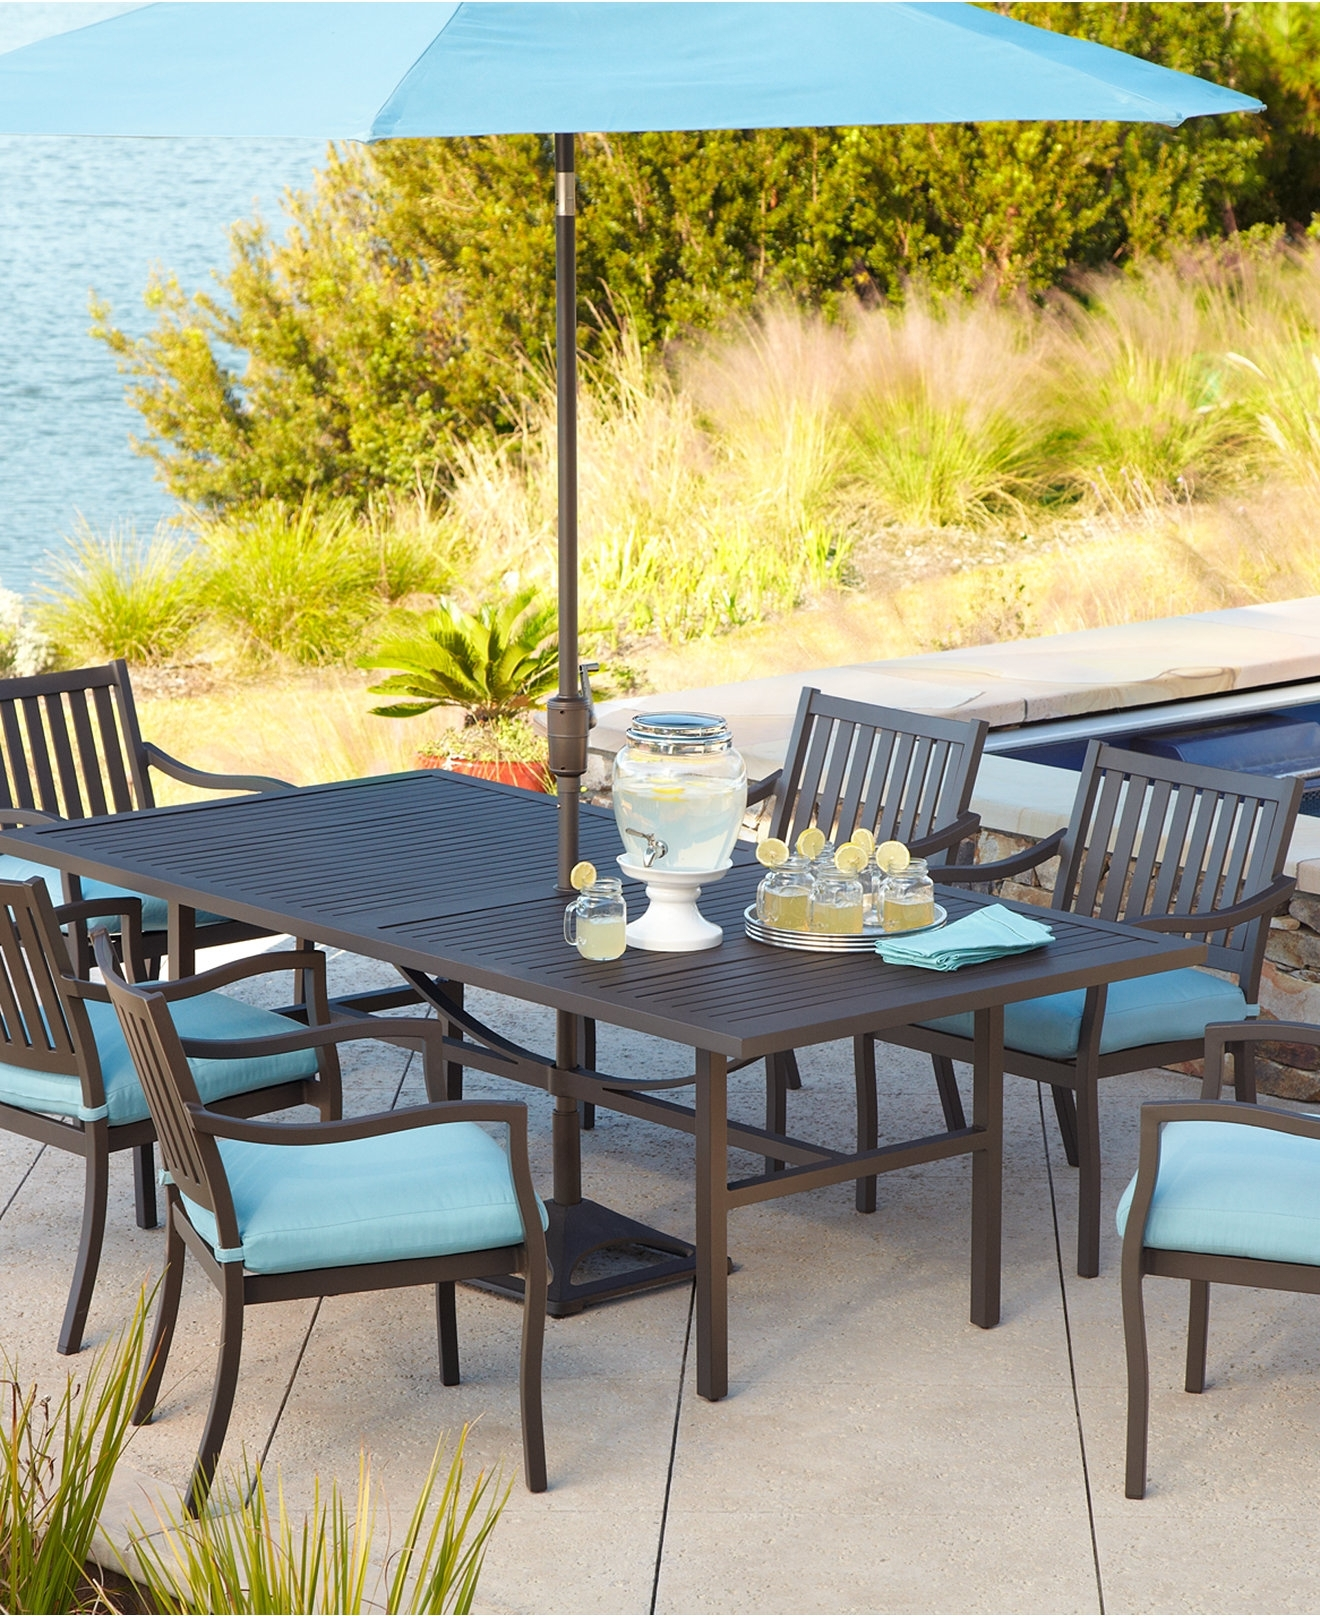 Widely Used Patio Dining Sets With Umbrellas With Round Patio Dining Sets Small Table With Umbrella Hole Aluminum Set (View 20 of 20)